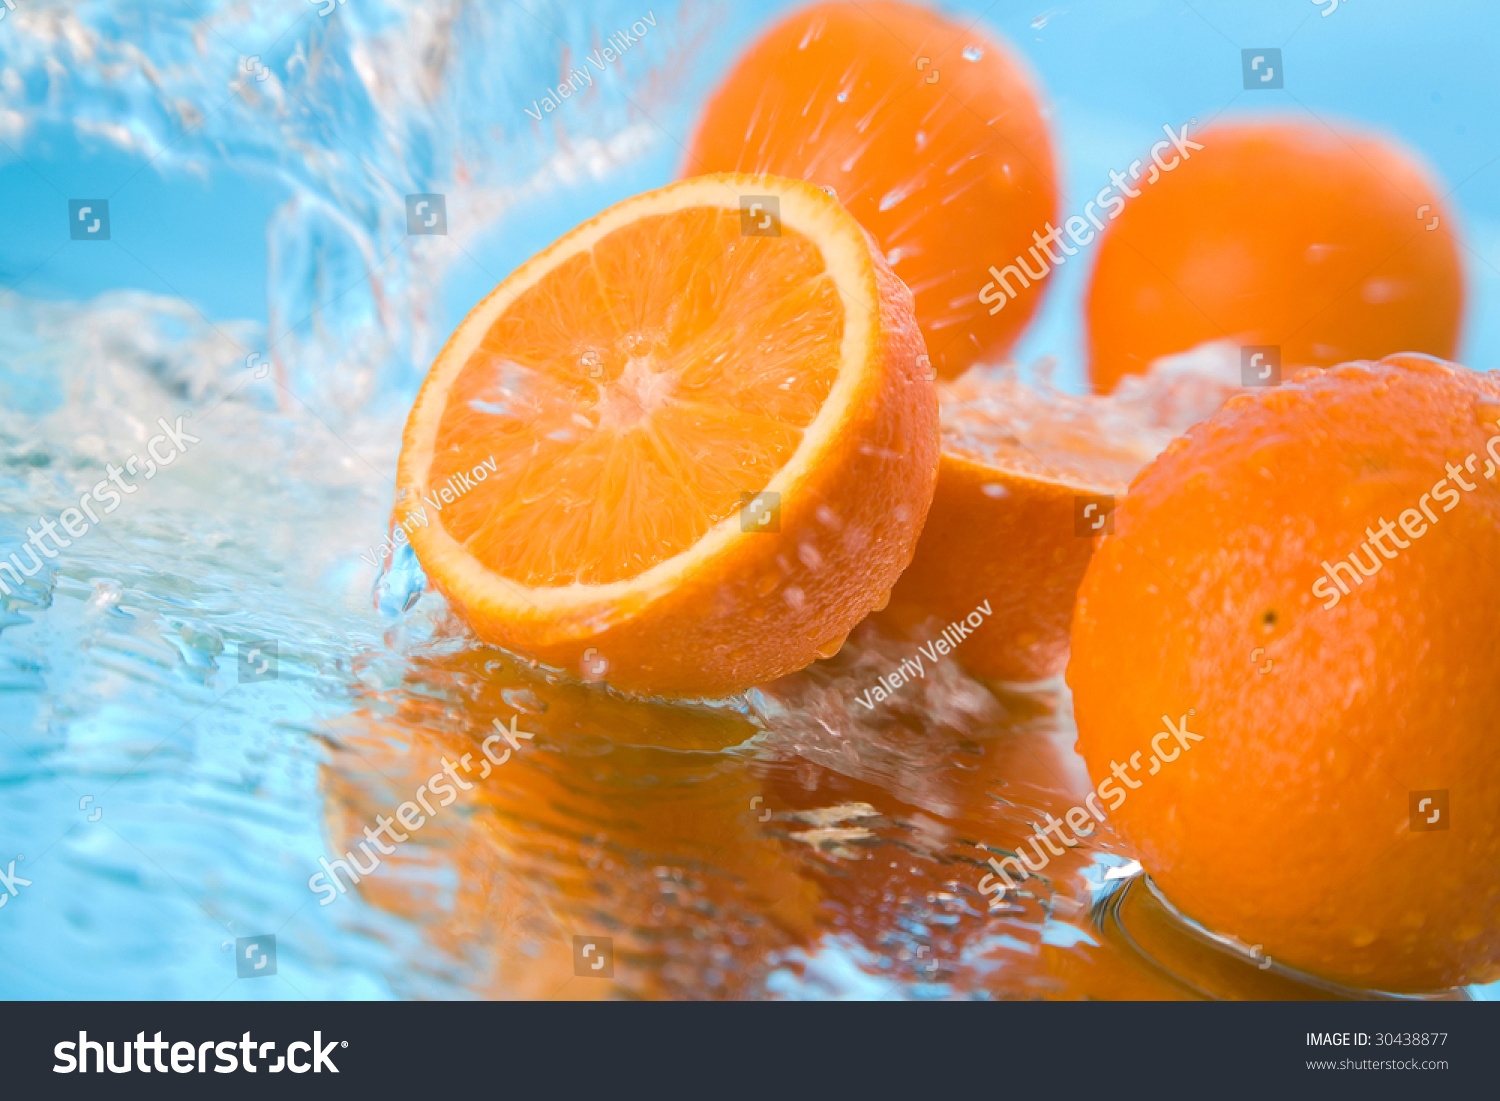 orange in water #30438877